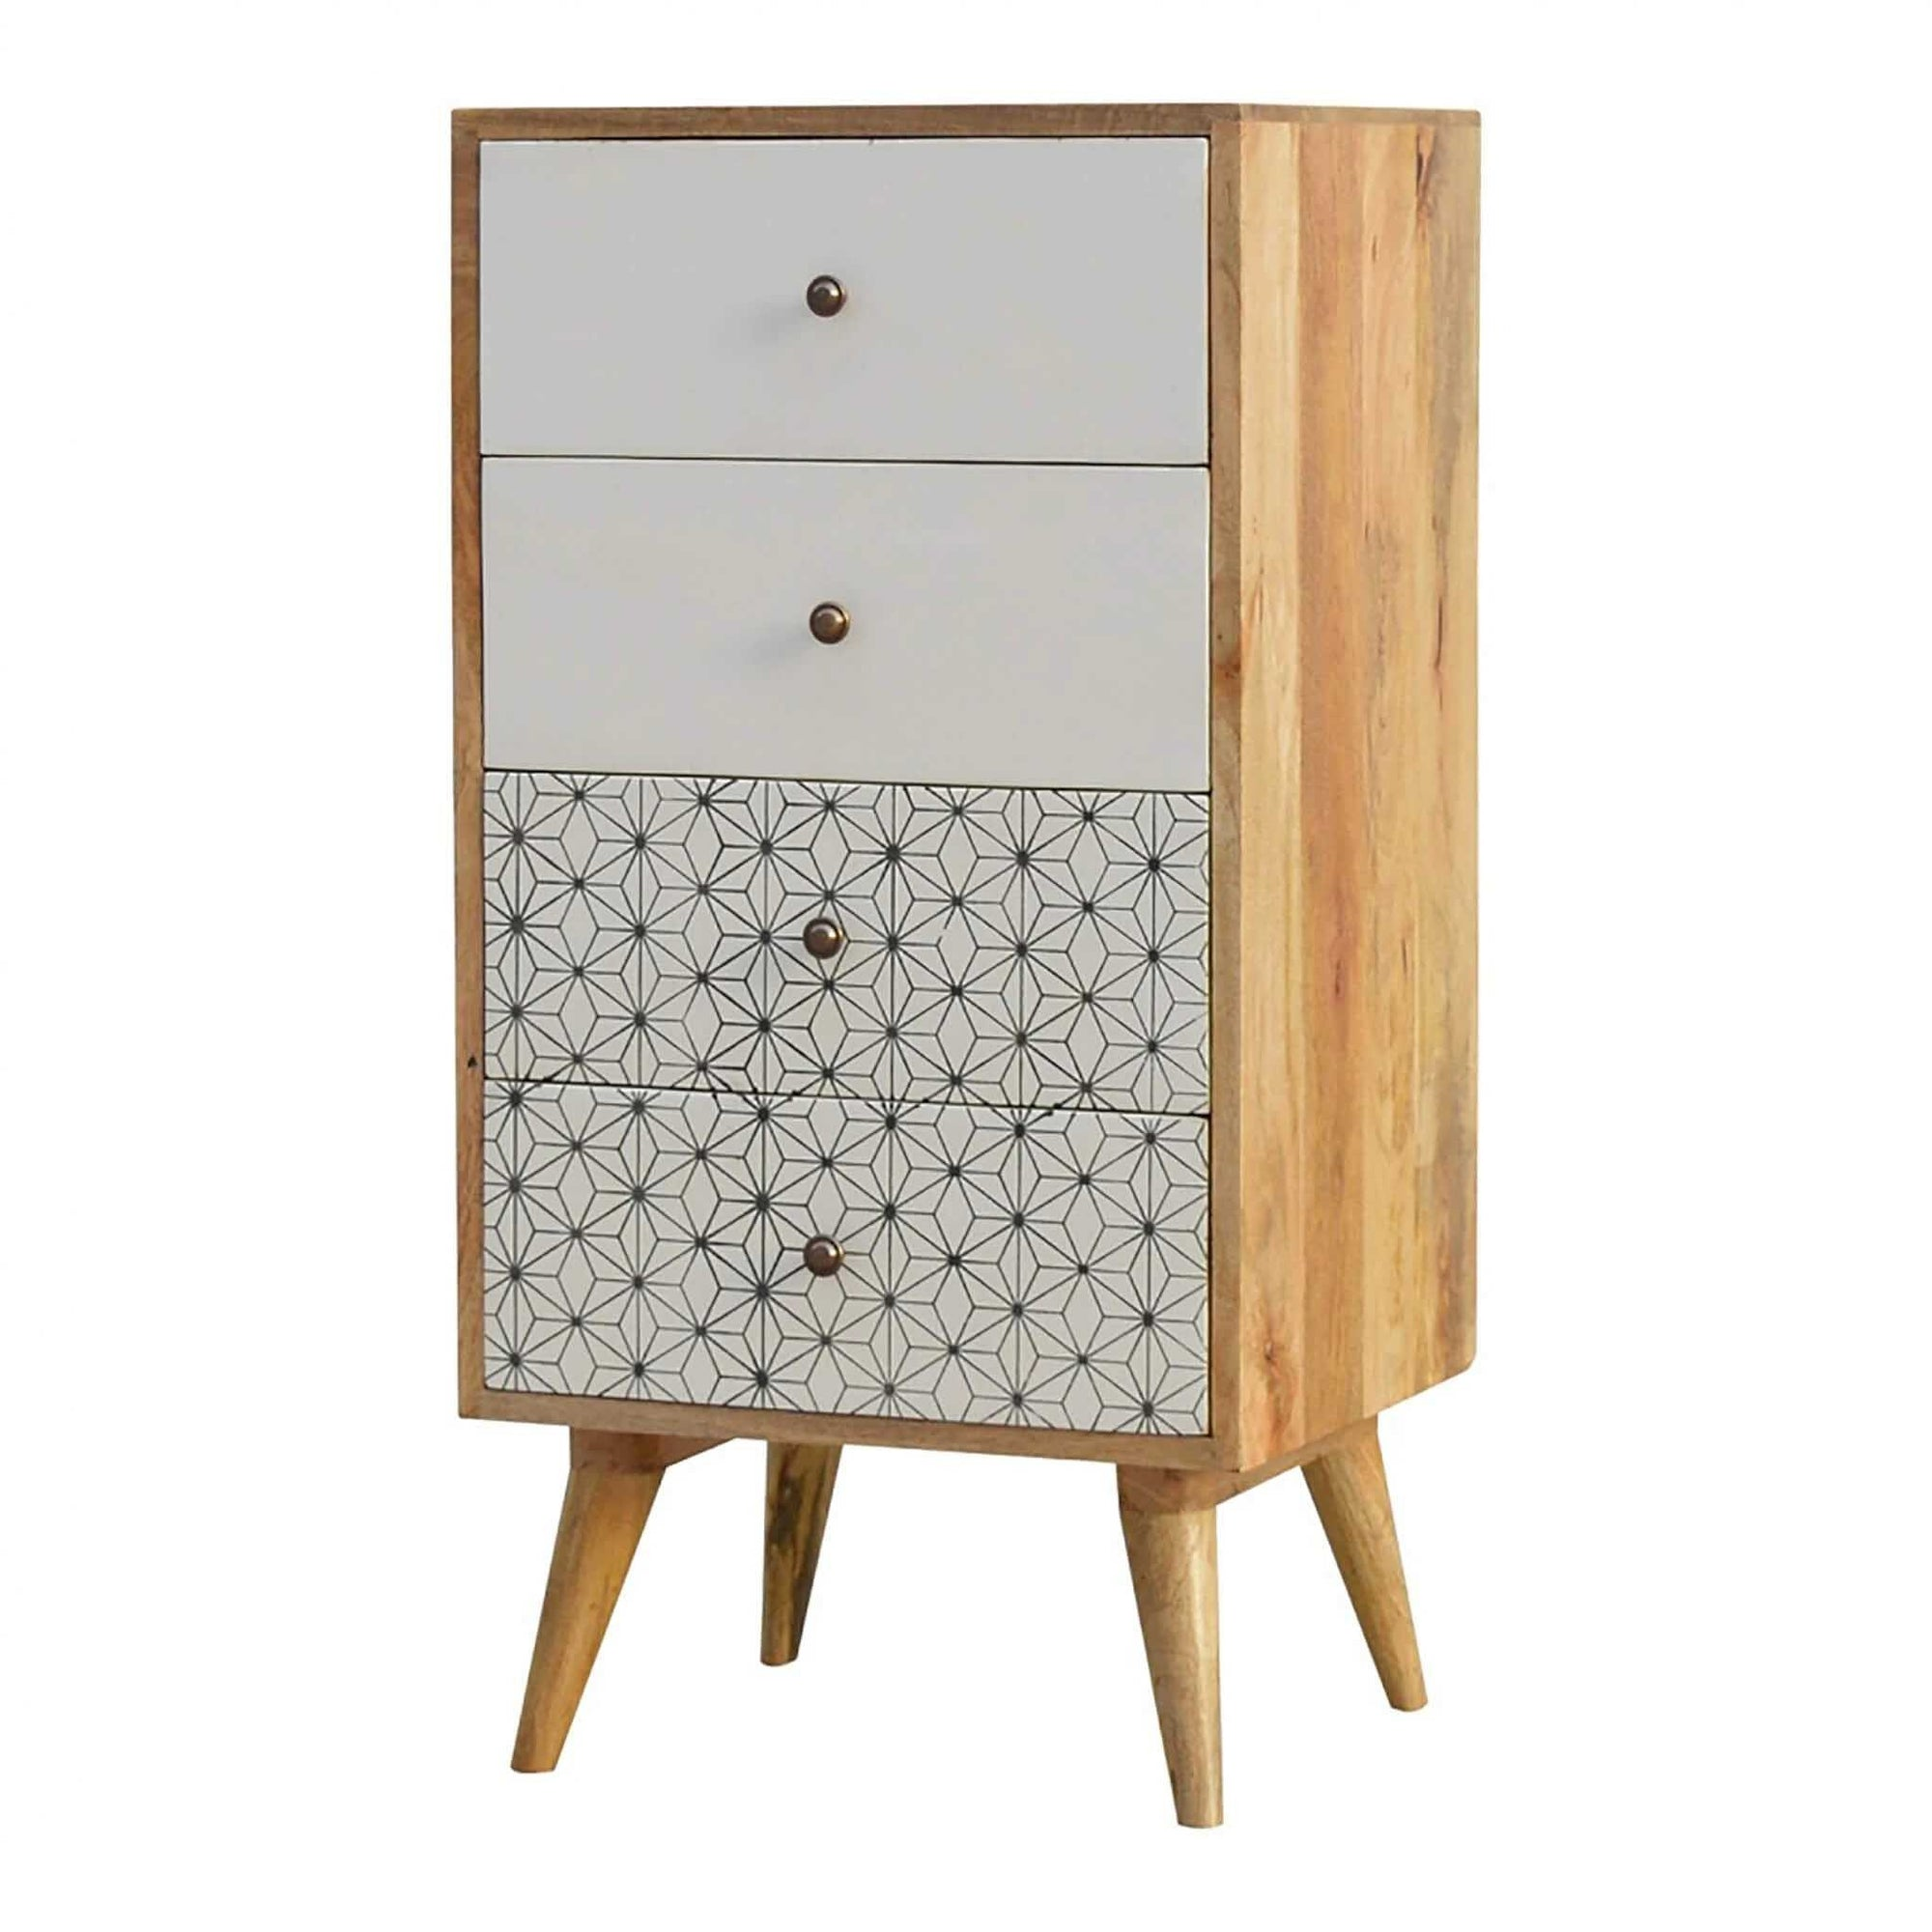 Artisan 4 Drawer Tallboy with 2 Geometric Screen Printed Drawer Fronts by Roseland Furniture